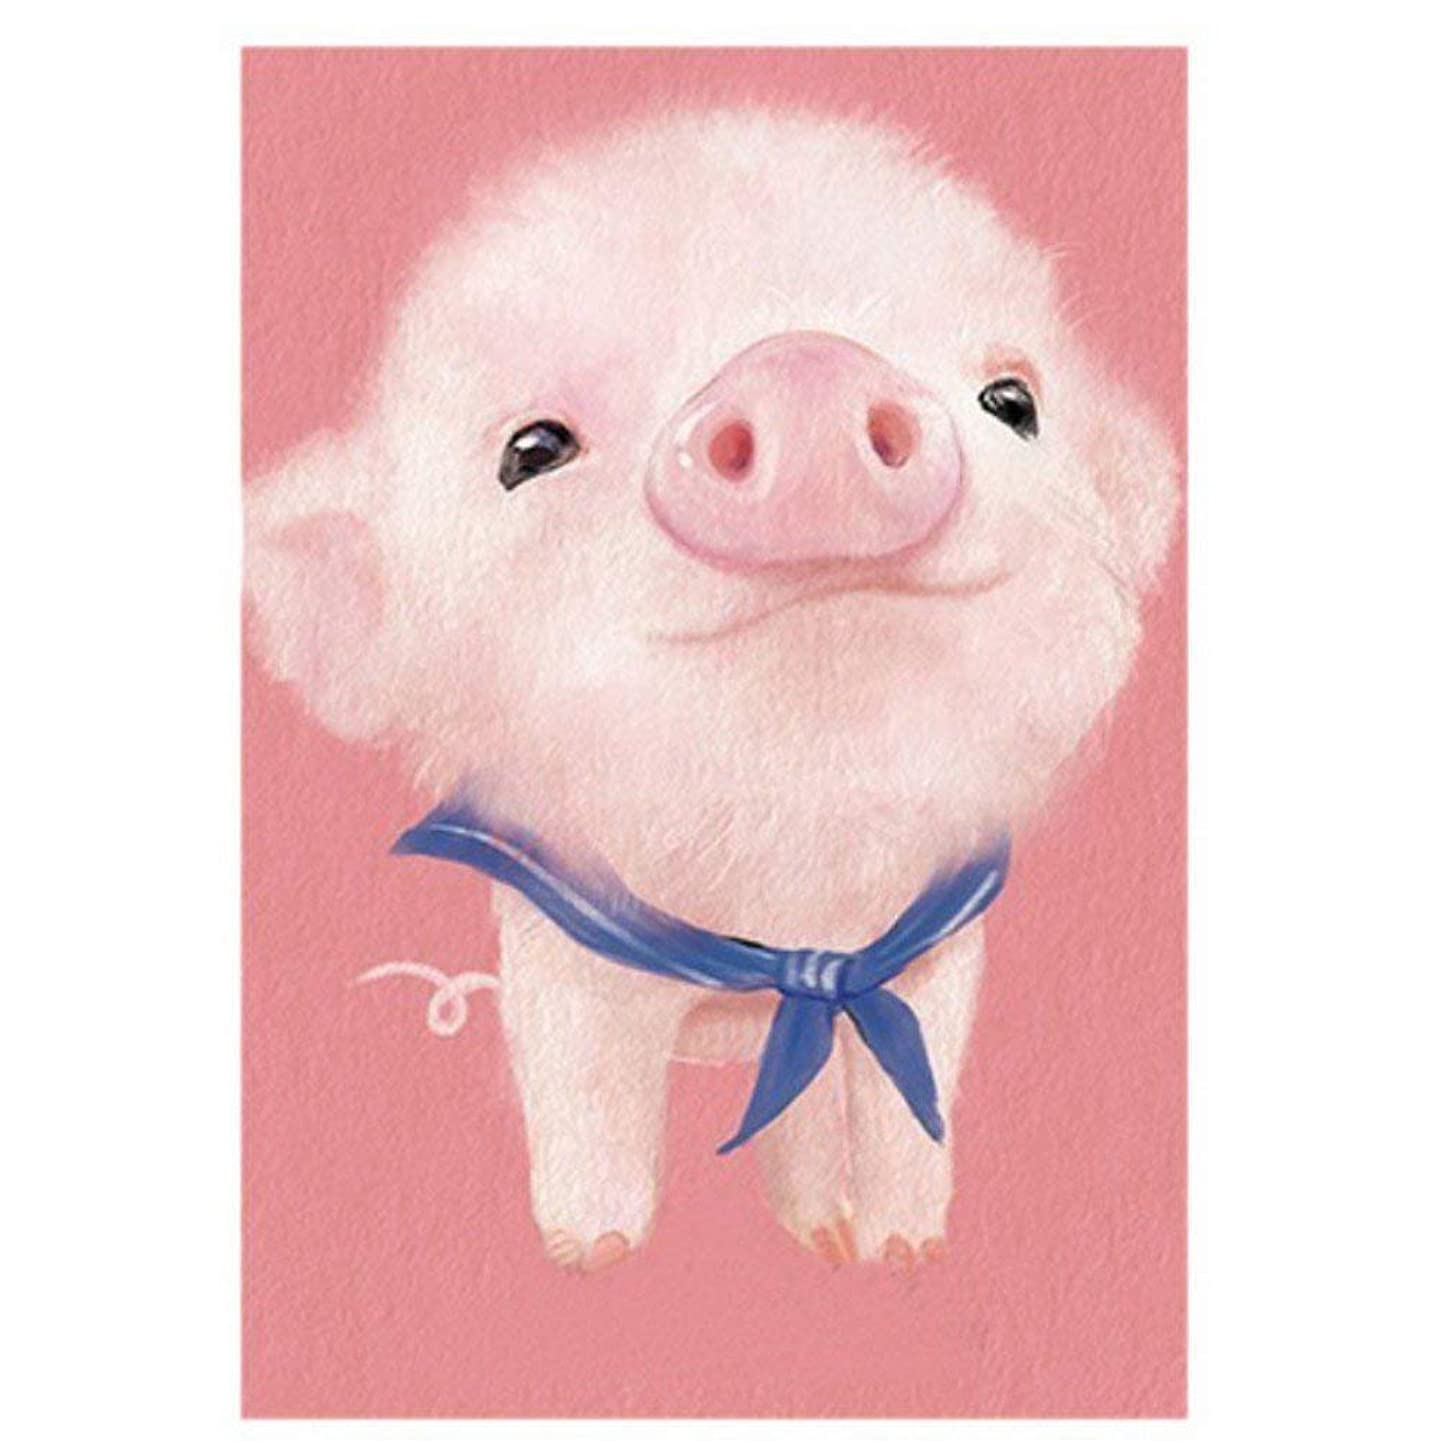 NYEBS DIY 5D Diamond Painting Kit for Adults Children, 5D DIY Diamond Painting Full Round Drill Animal Lovely Pink Pig Rhinestone Embroidery for Wall Decoration 12X16 inches …